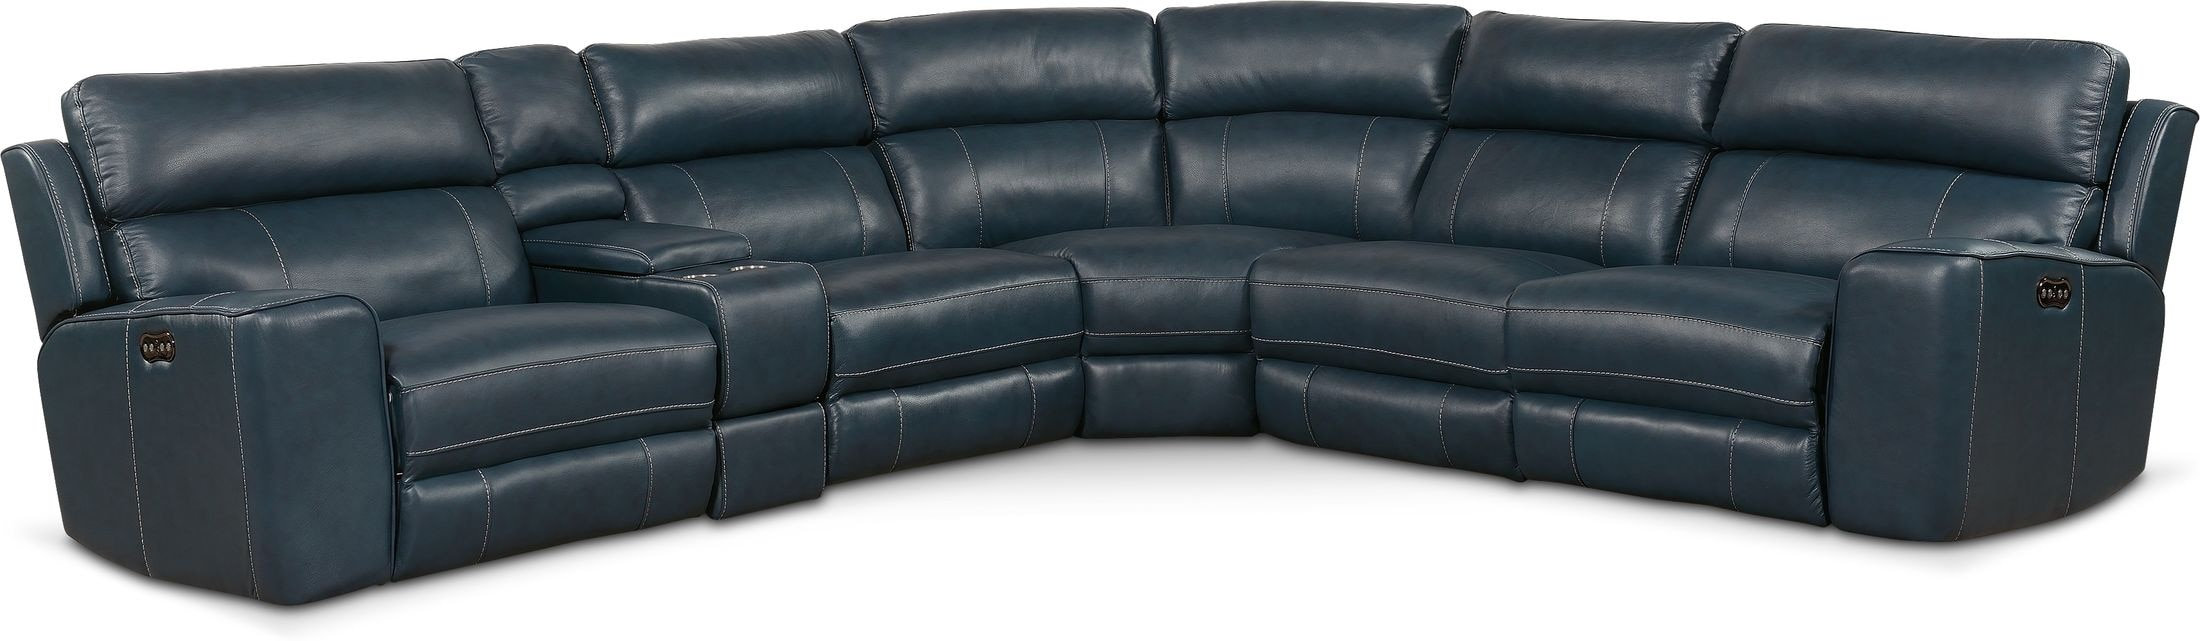 Living Room Furniture - Newport 6-Piece Dual-Power Reclining Sectional with 2 Reclining Seats